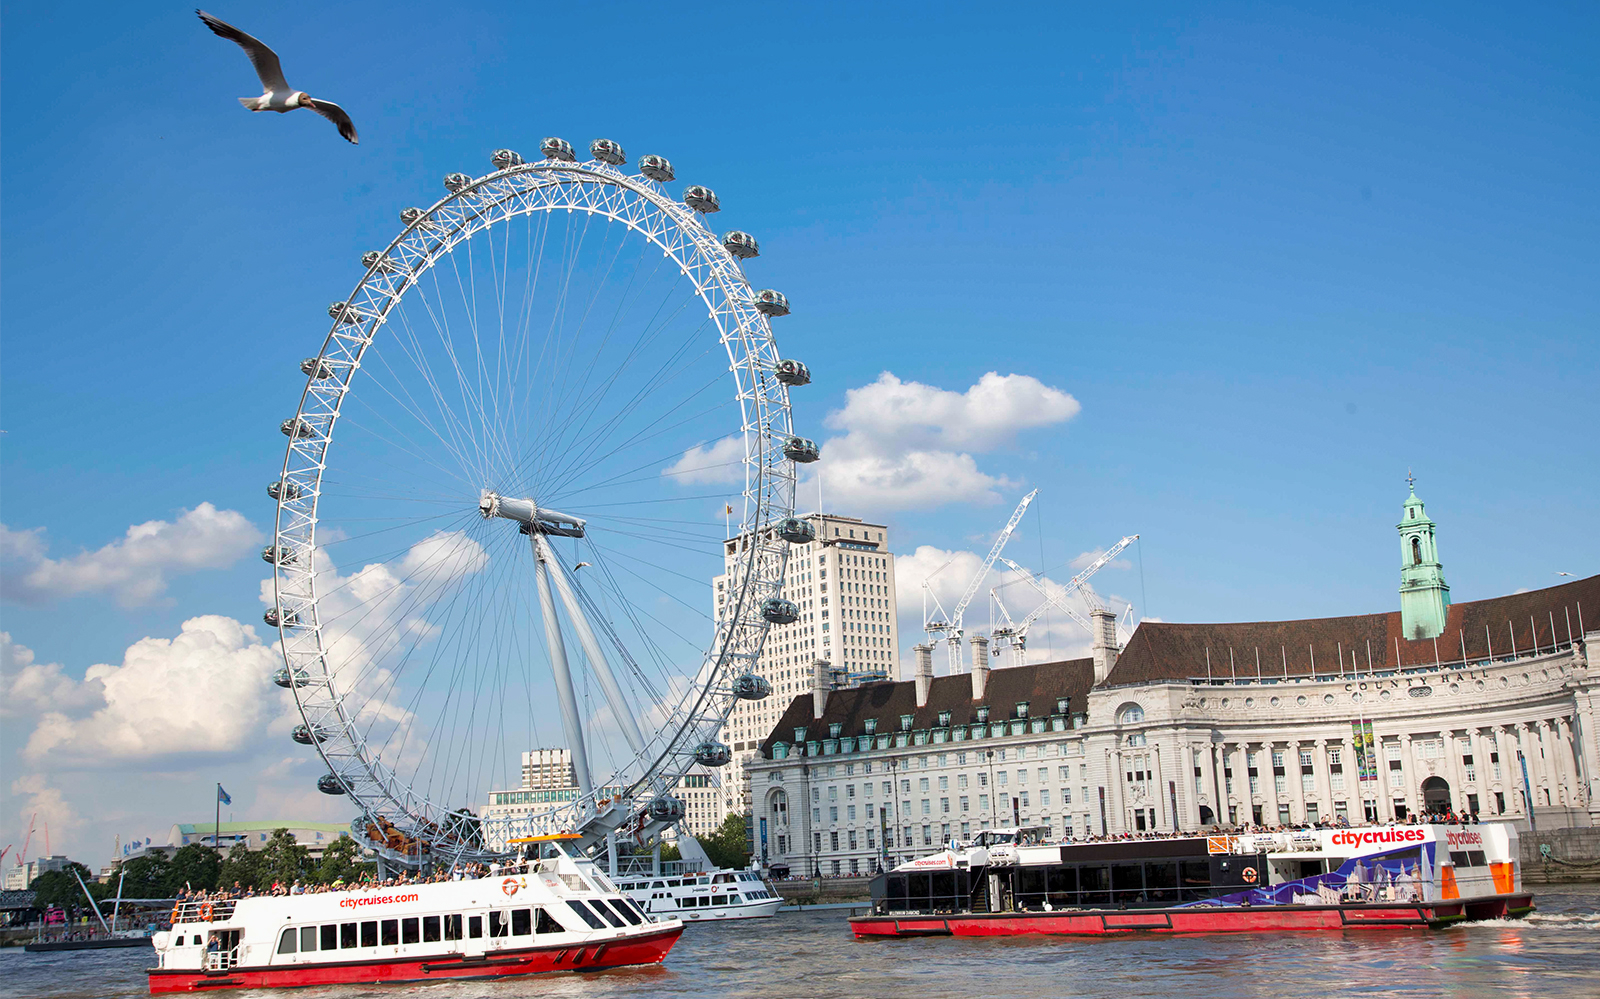 Bus 92 Paris Best Of London Hoho Cruise And Walking Tour